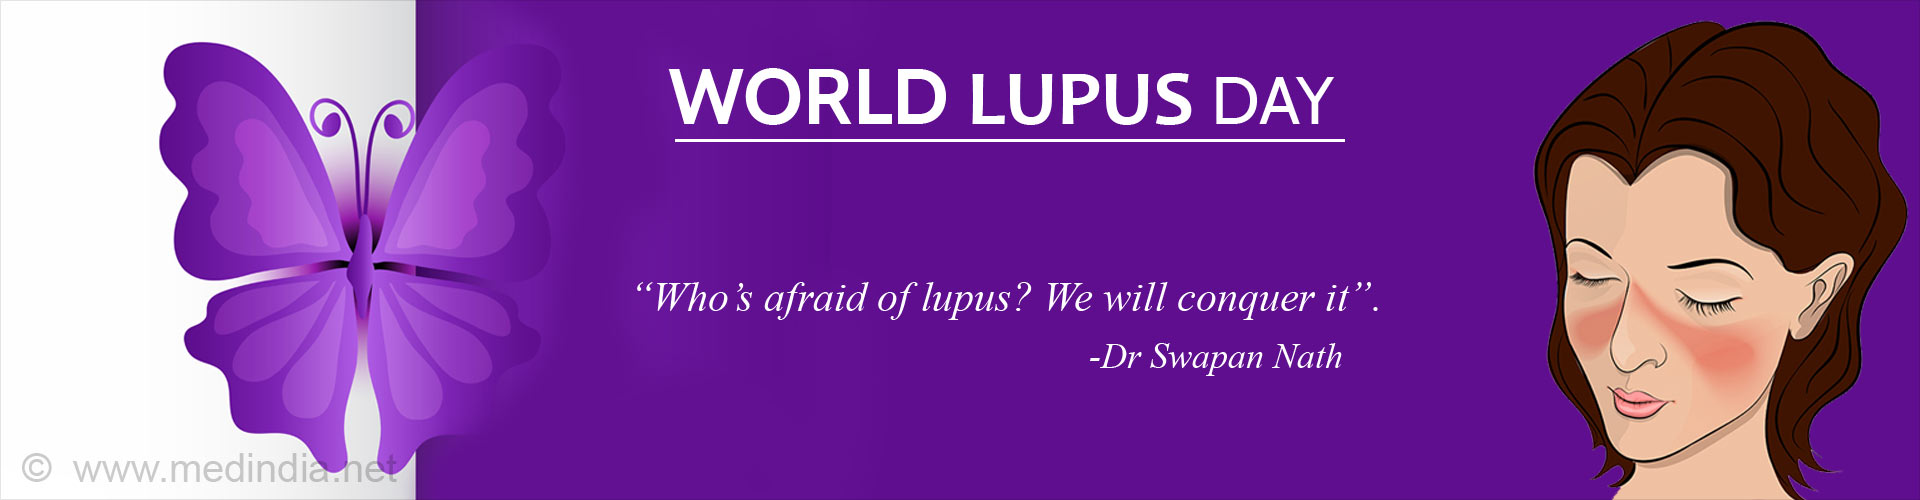 World Lupus Day 2017